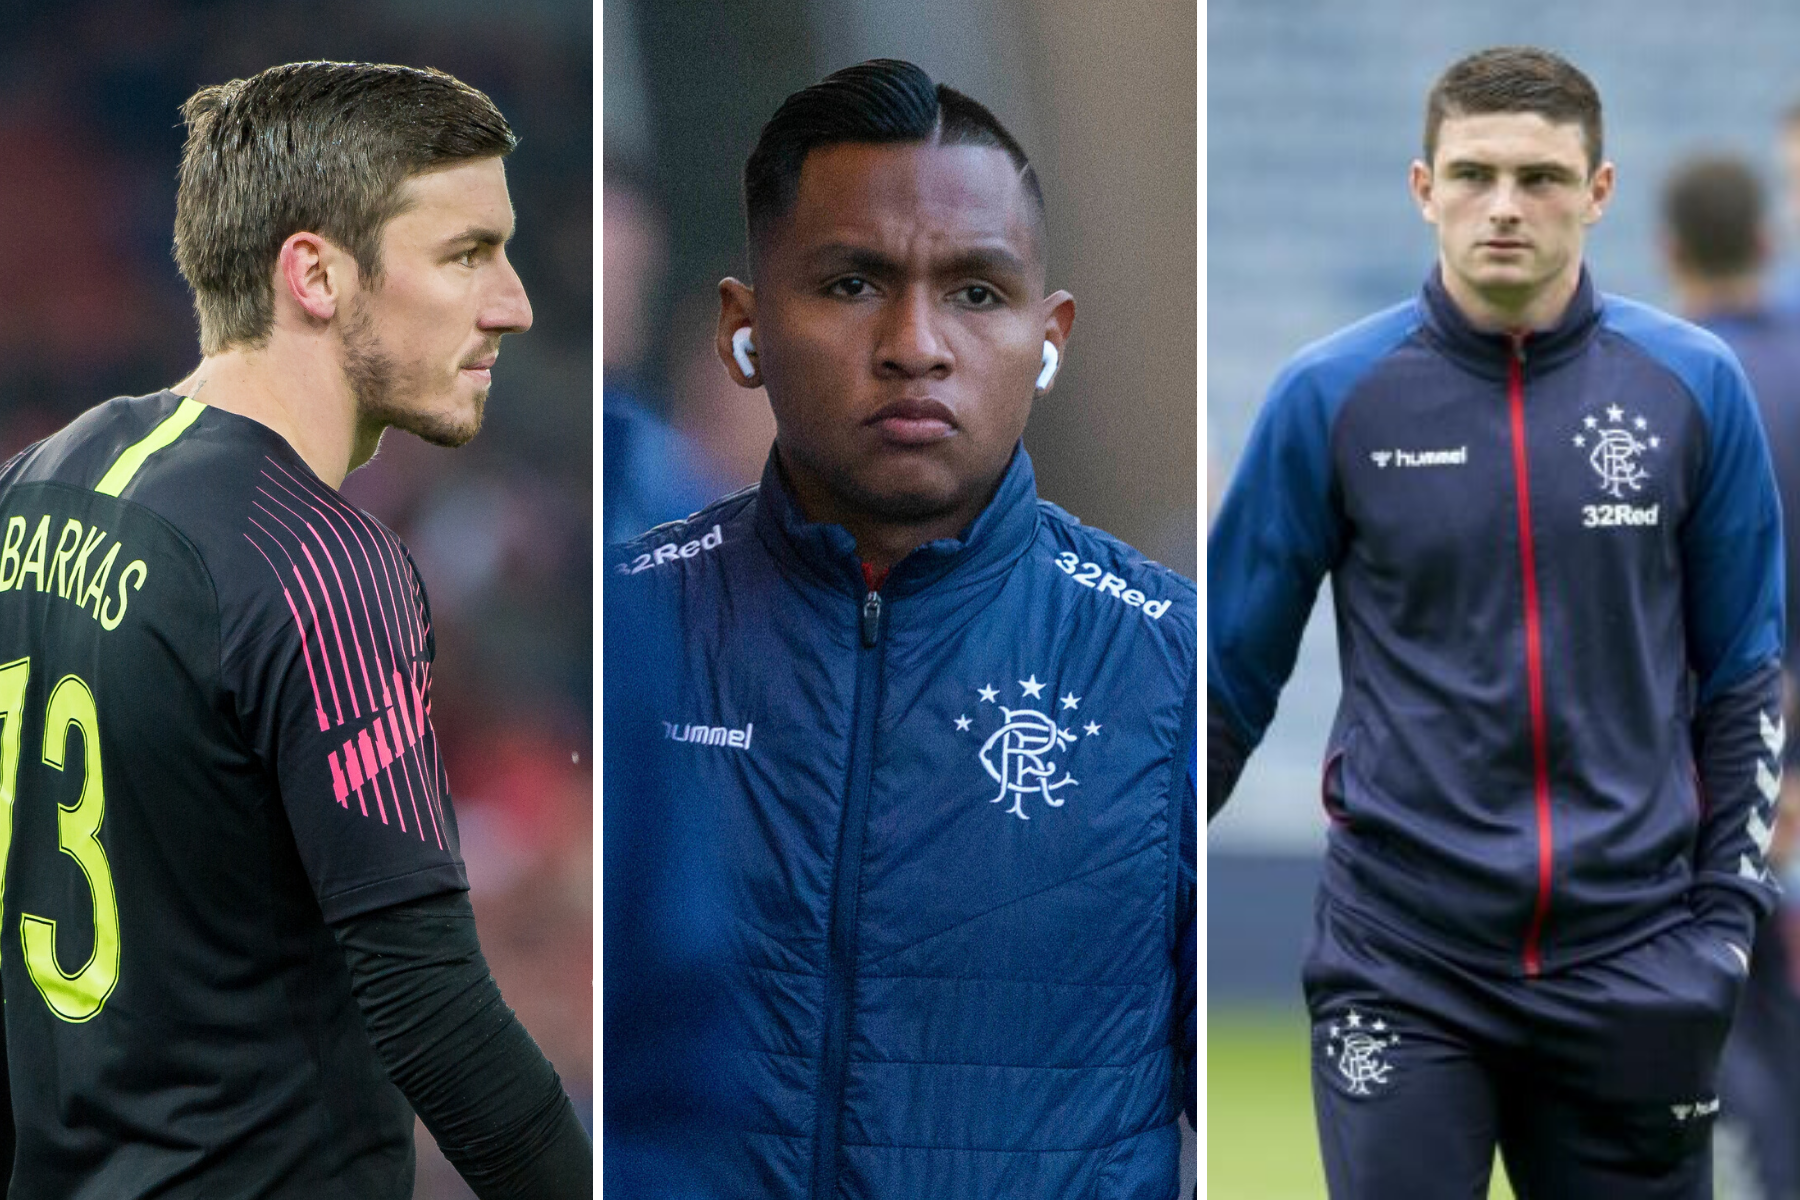 Scottish transfer news LIVE: Celtic linked with £5m rated goalkeeper | Rangers ace Morelos latest | Motherwell sign Hastie